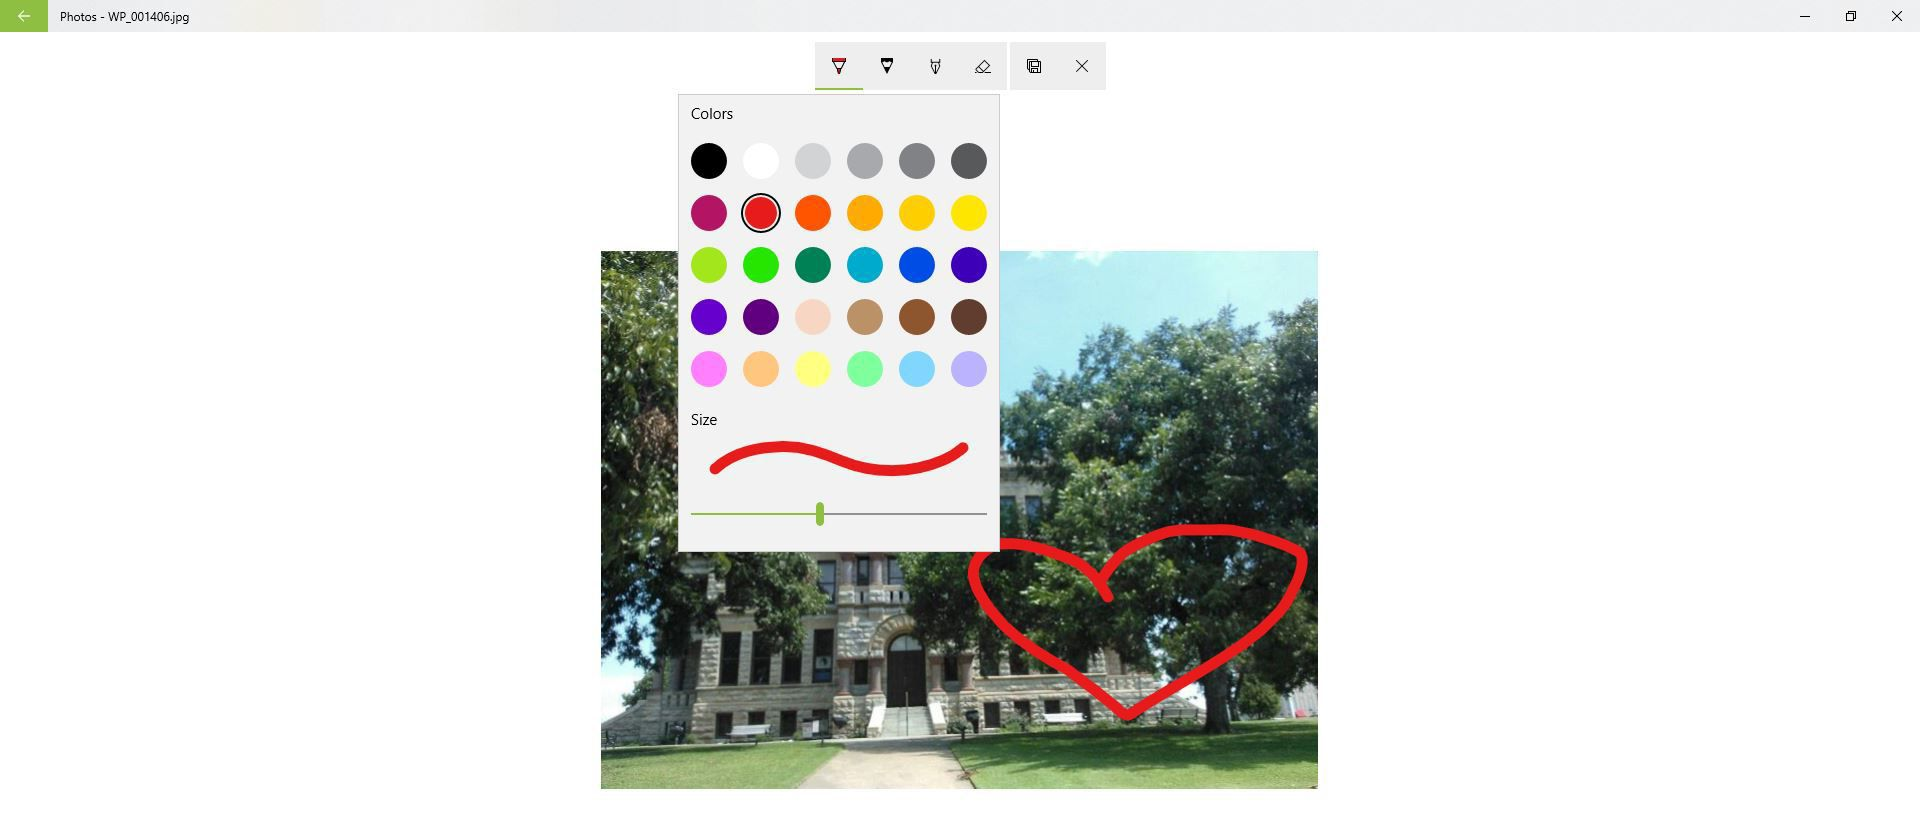 The Draw feature in Microsoft Photos